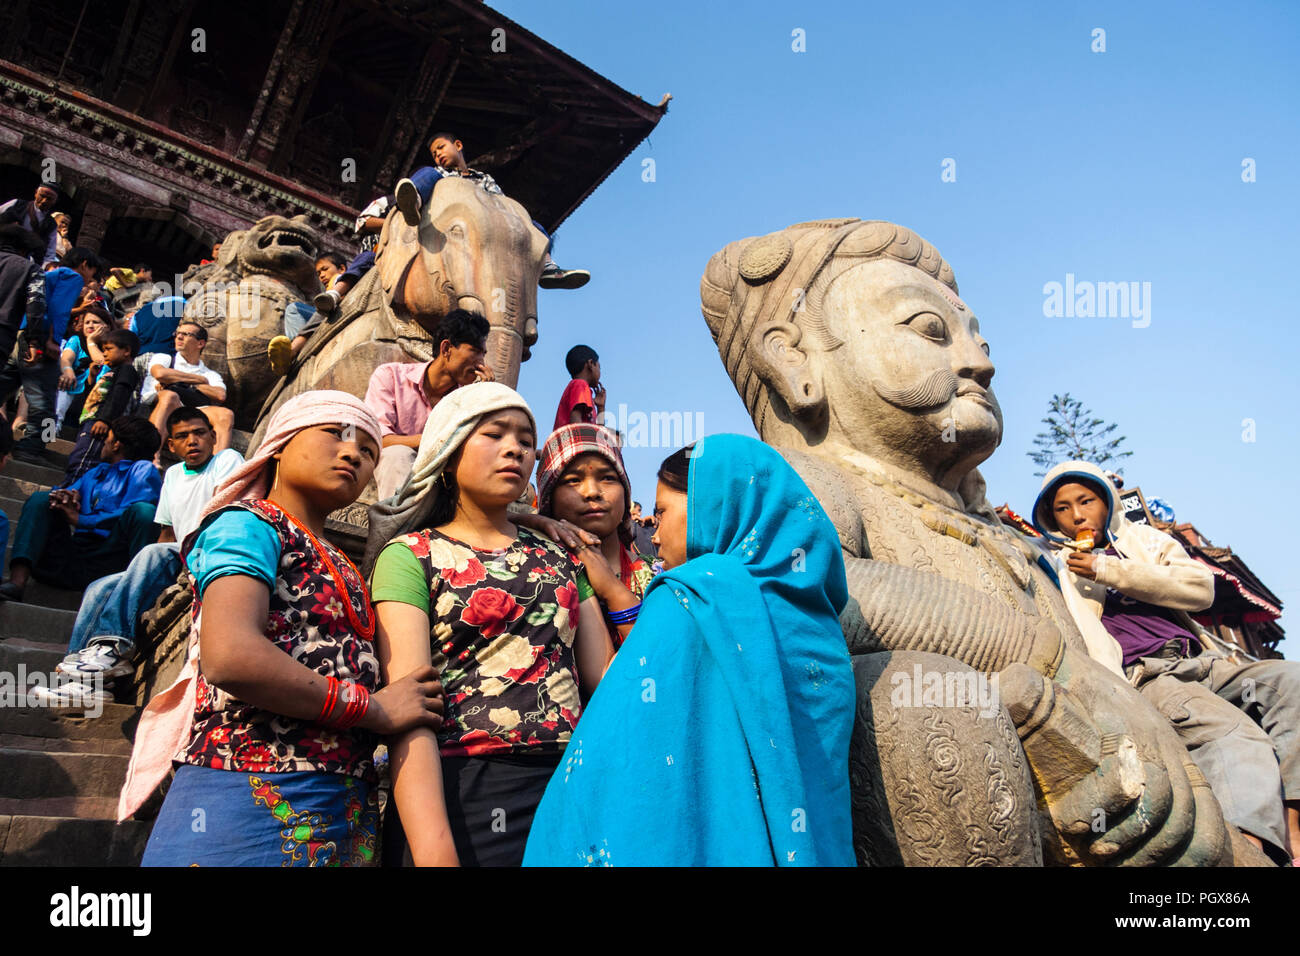 Bhaktapur, Kathmandu Valley, Bagmati, Nepal : Onlookers gather at the steps of the Nyatapola temple at Taumadhi tole square before the inauguration of - Stock Image